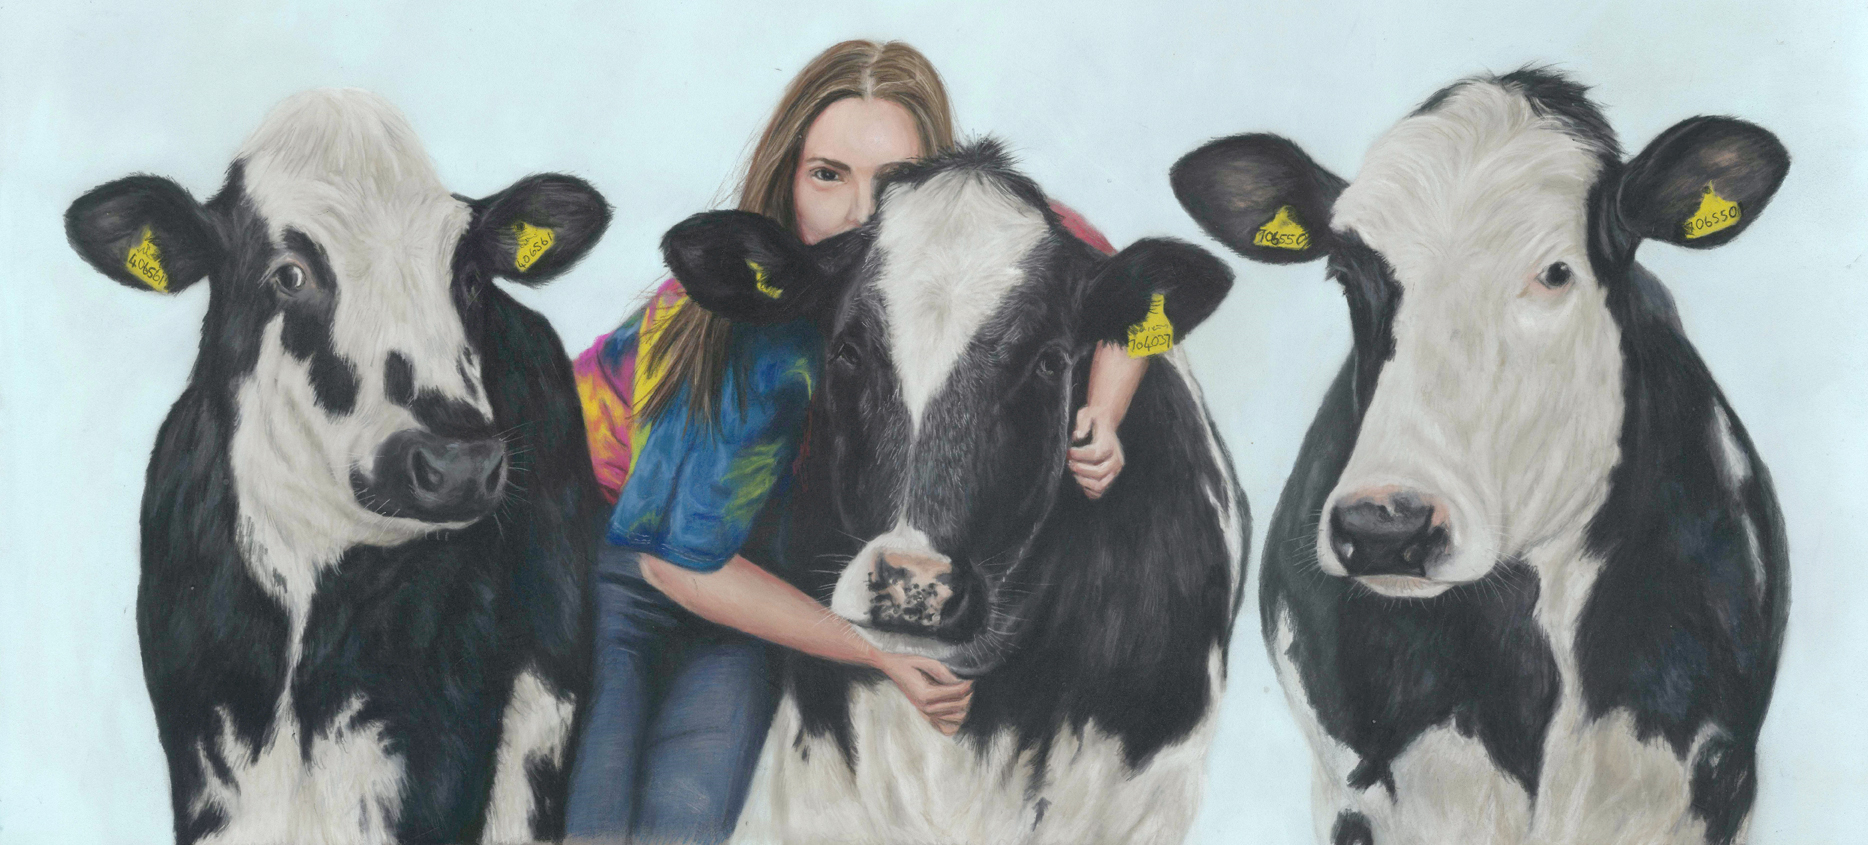 Pastel portrait of three cows